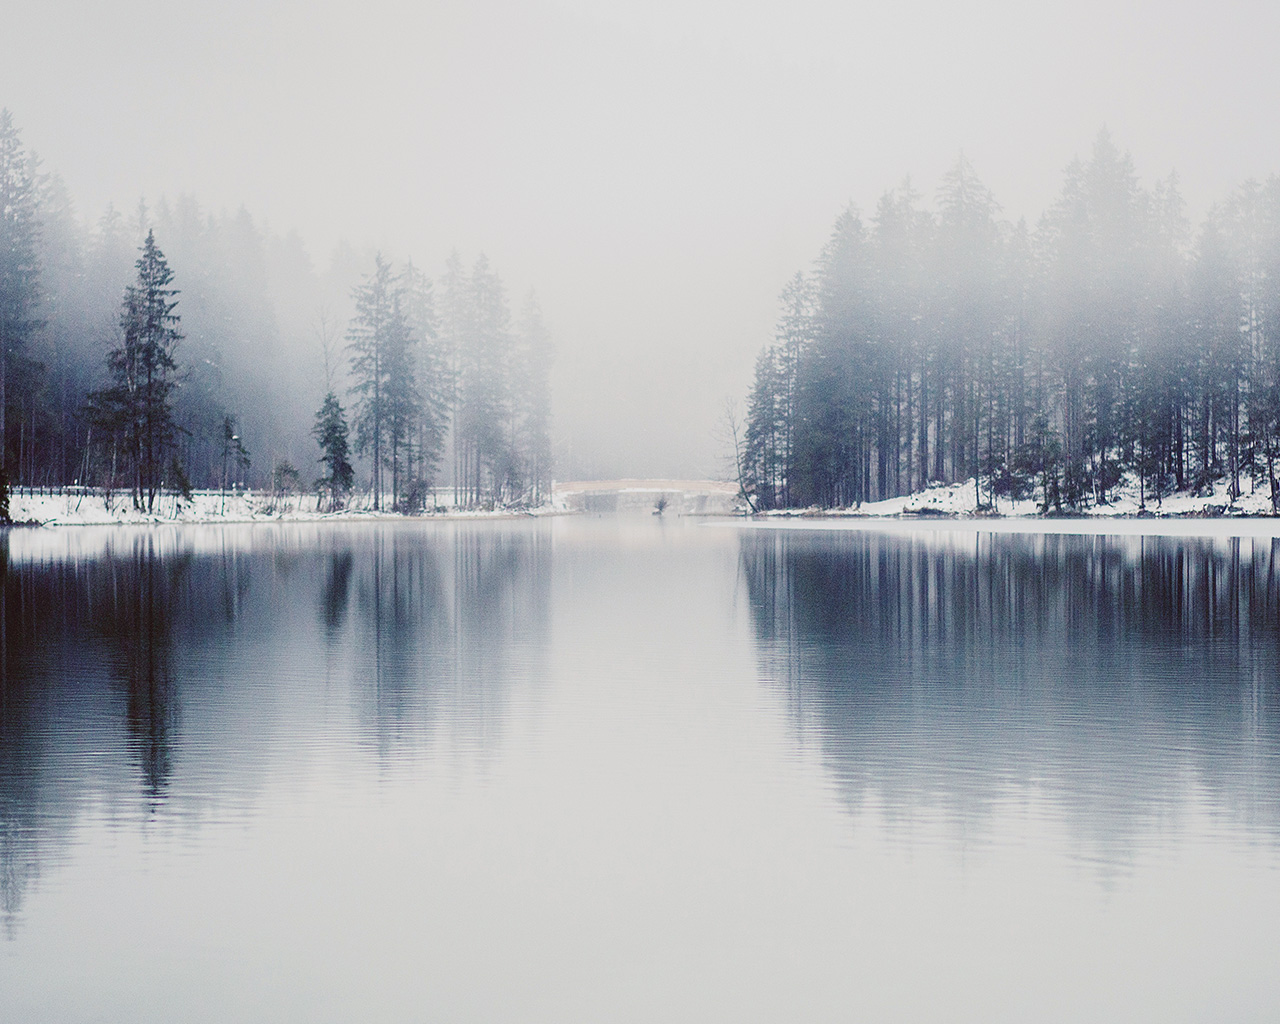 Disney Christmas Hd Wallpaper Nk06 Winter Lake White Blue Wood Nature Fog Wallpaper